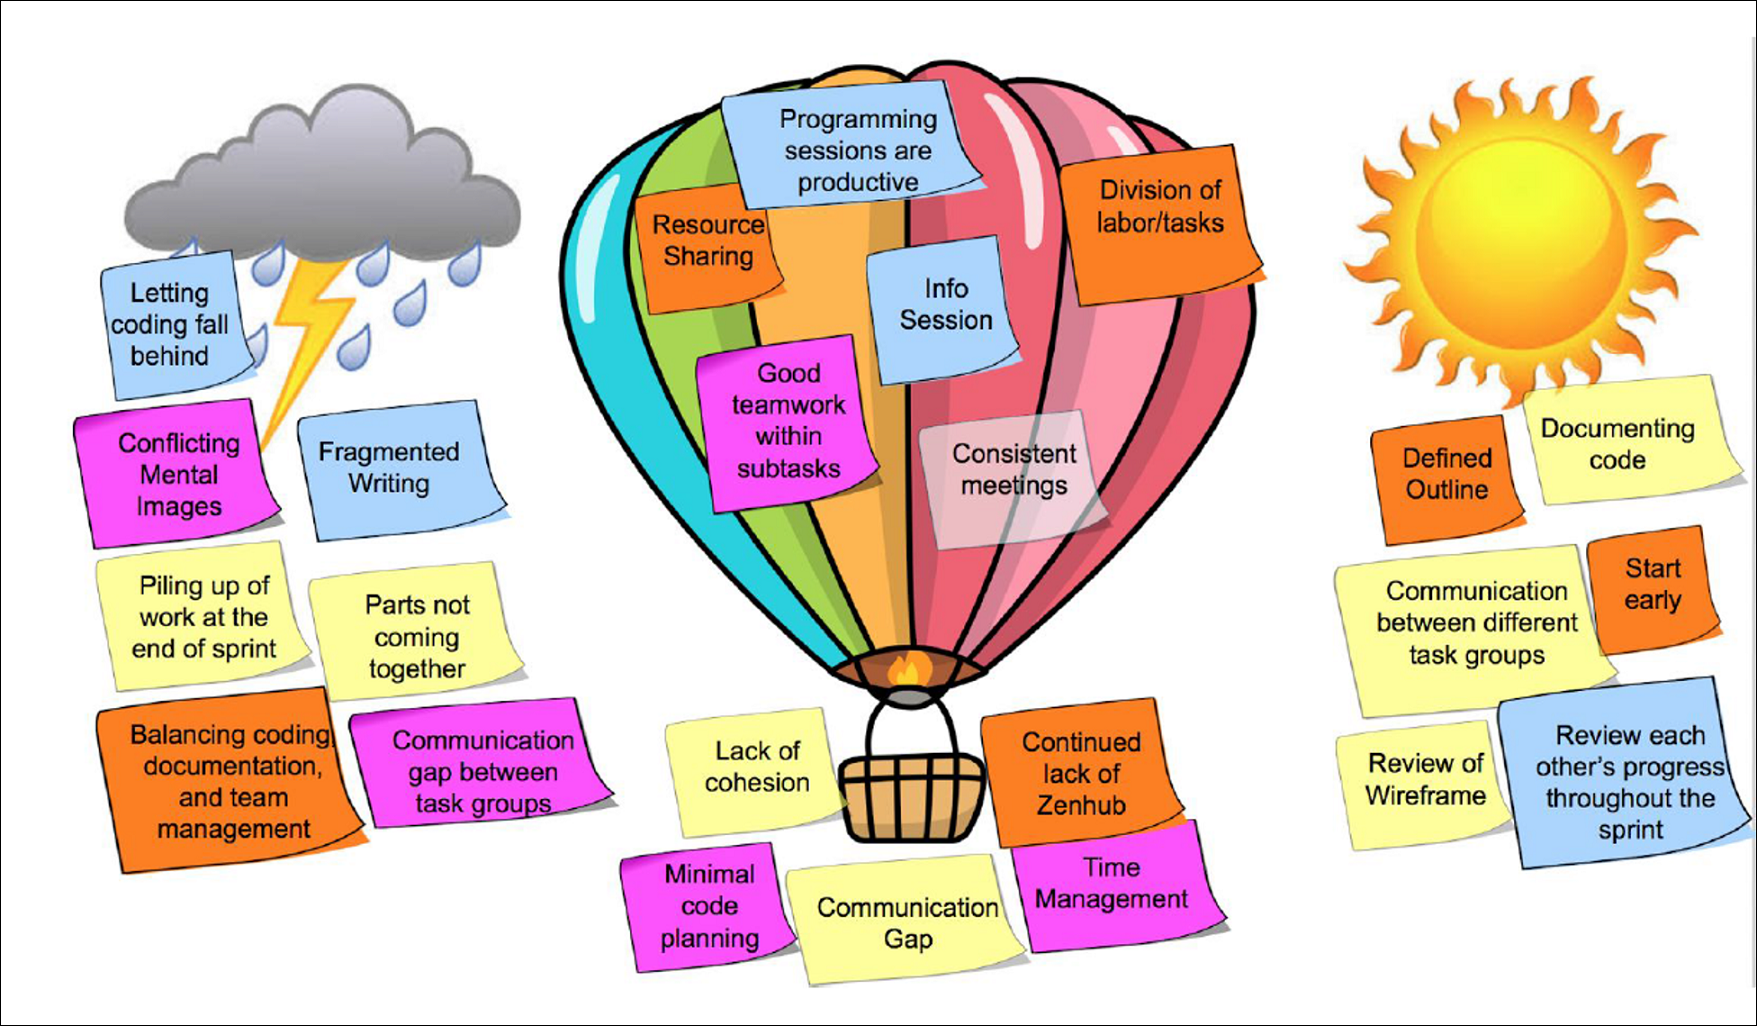 Diagram of a hot air balloon used for a retrospective exercise. Electronic sticky notes have been added to describe issues.